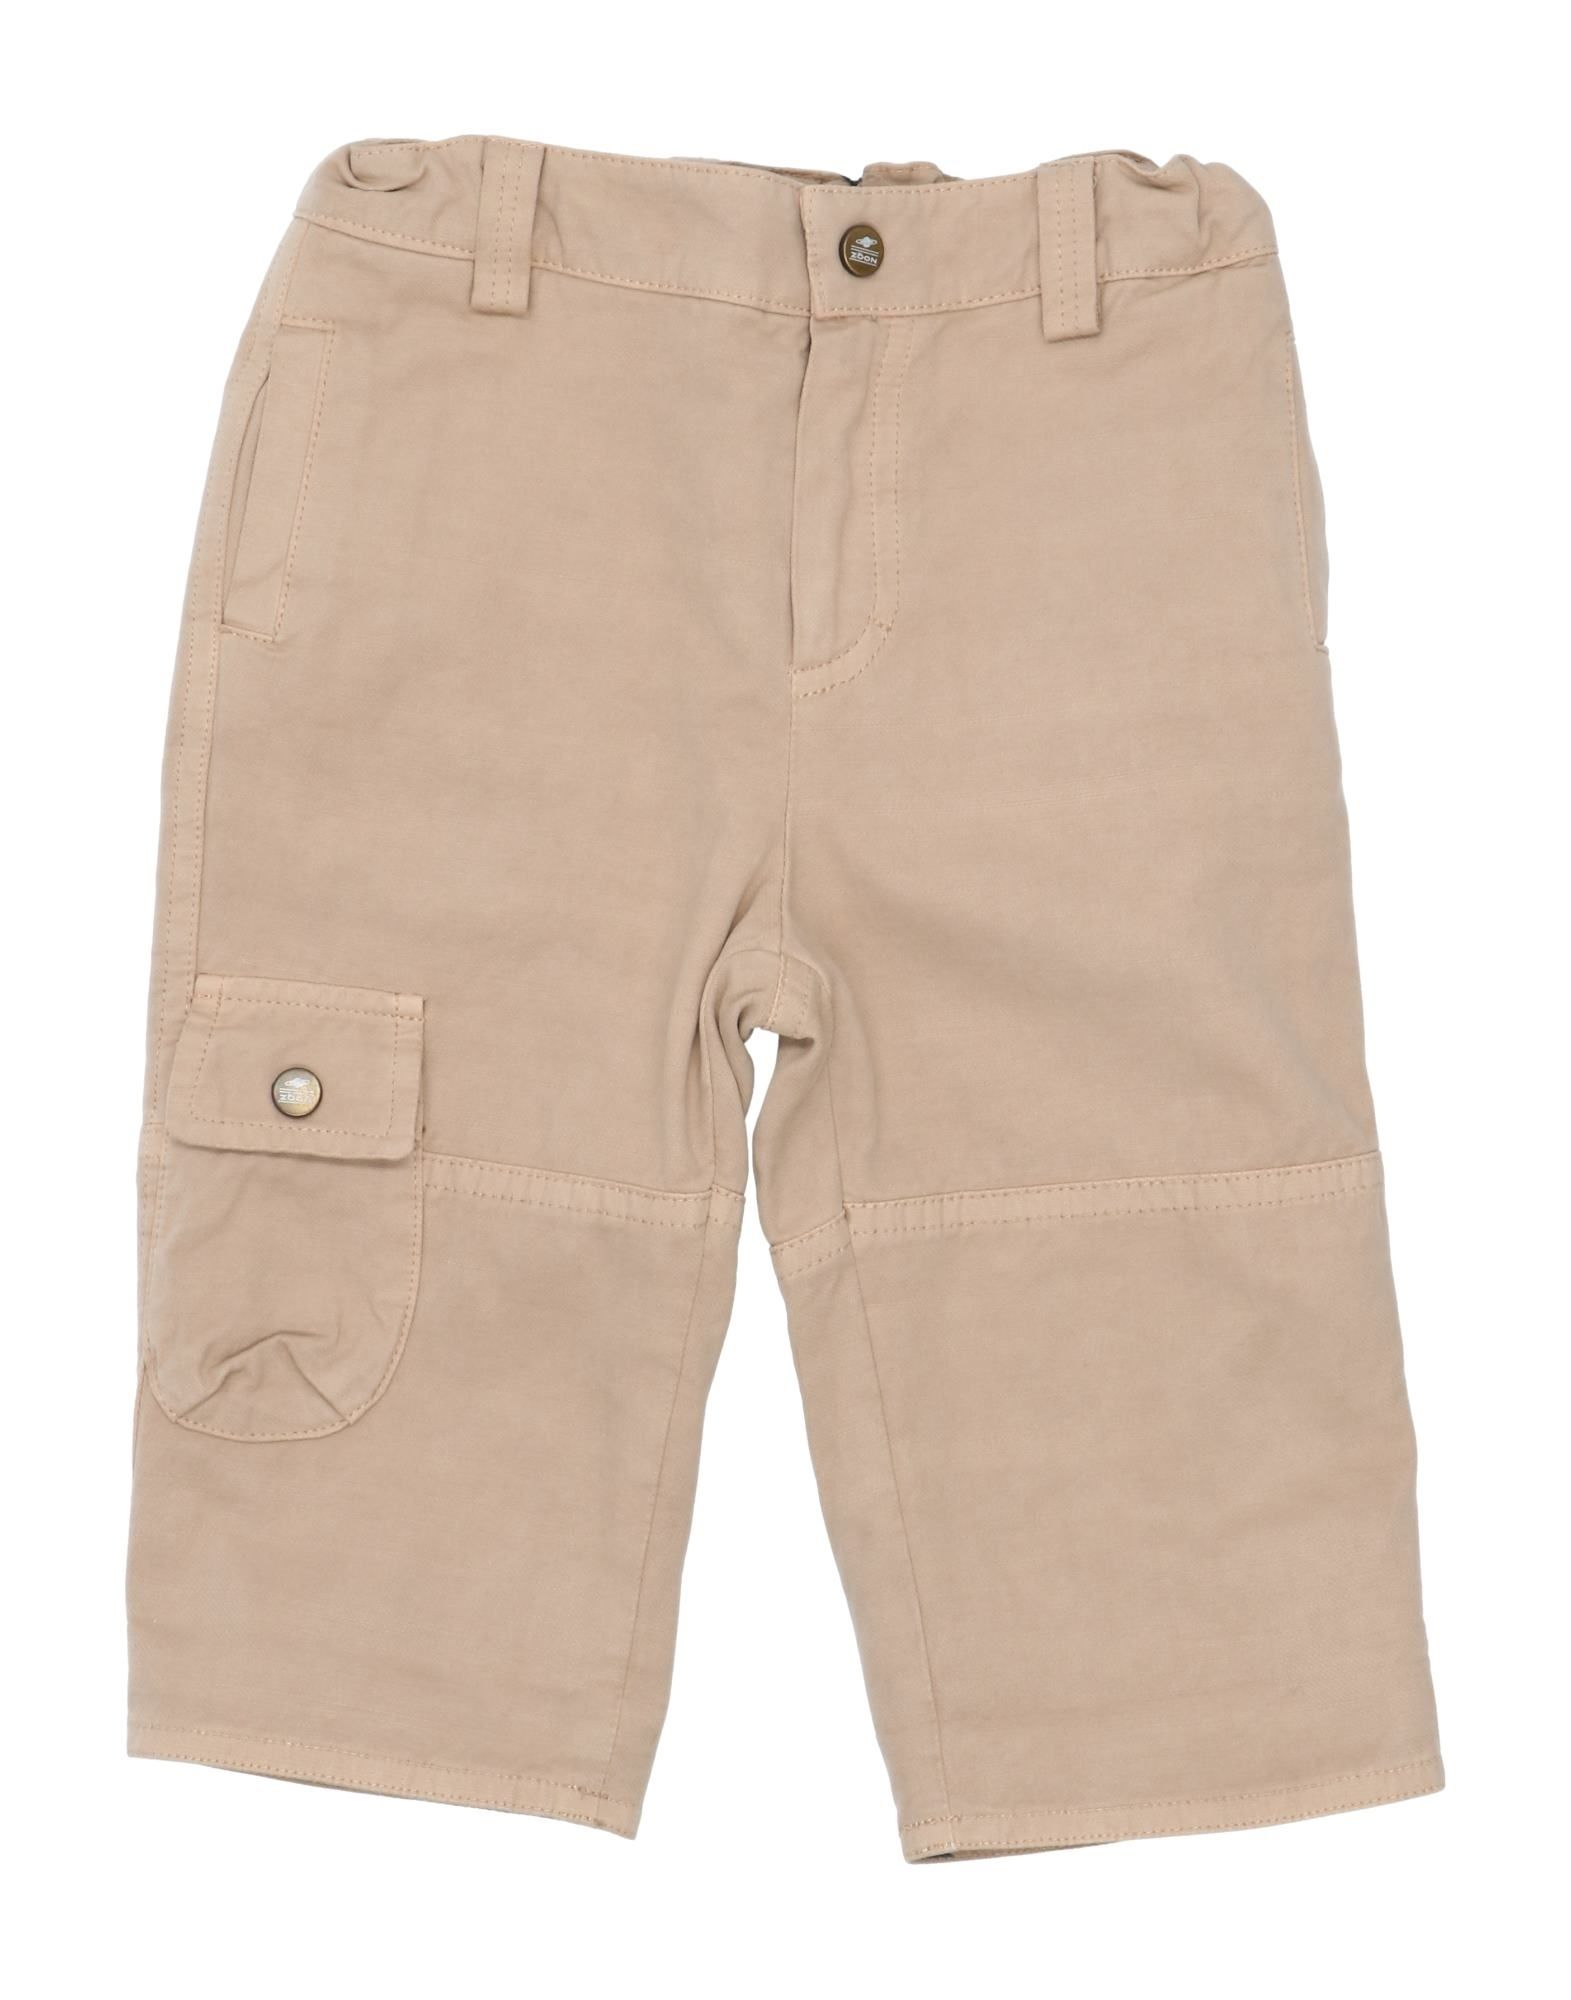 Zoon Kids' Casual Pants In Neutrals